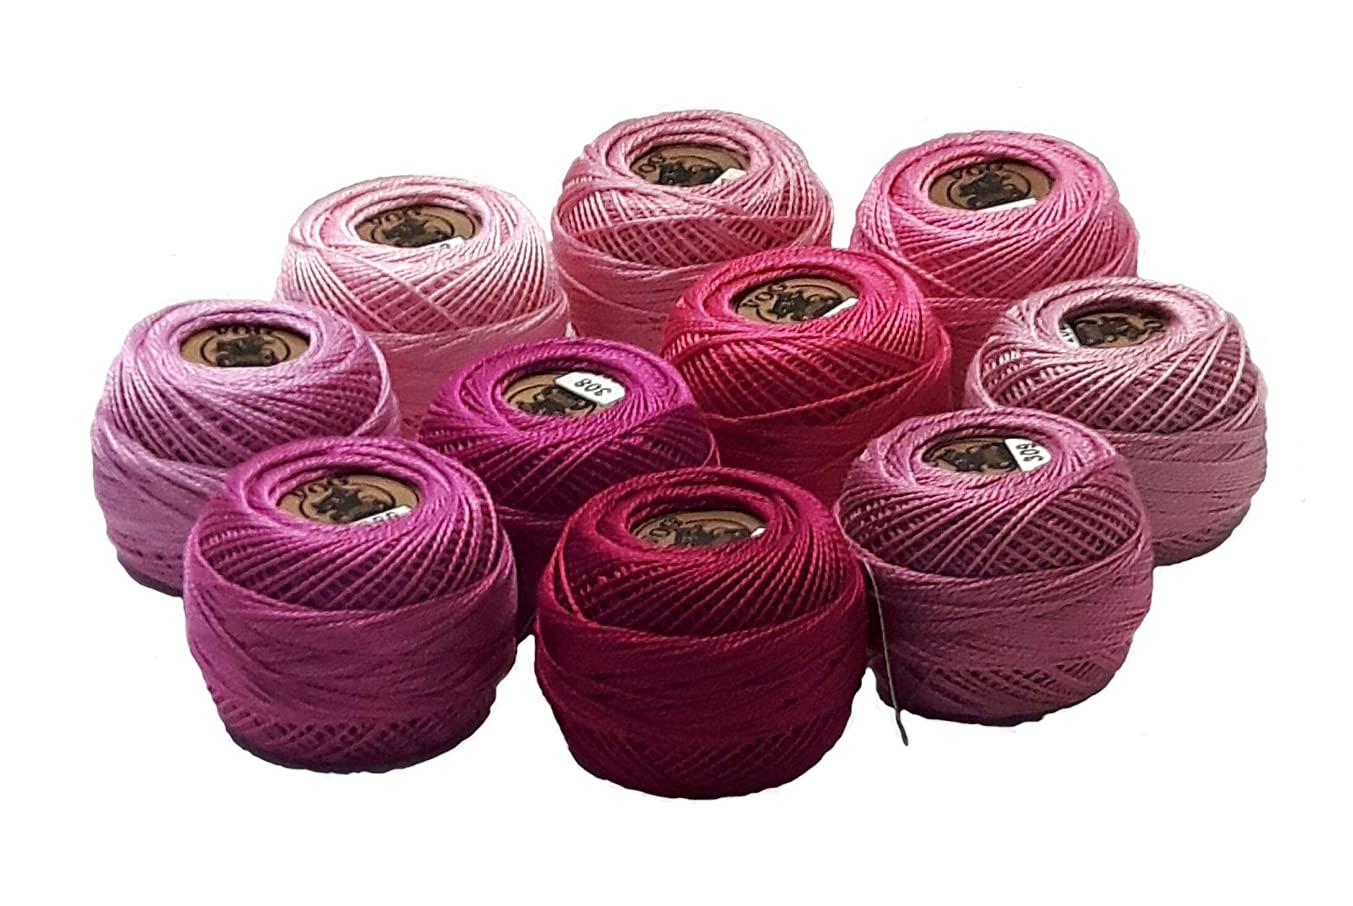 Vog Perle Cotton Size 8 Embroidery Threads - Set of 10 Balls (10gr Each) - Pink Shades (Column No. 2)